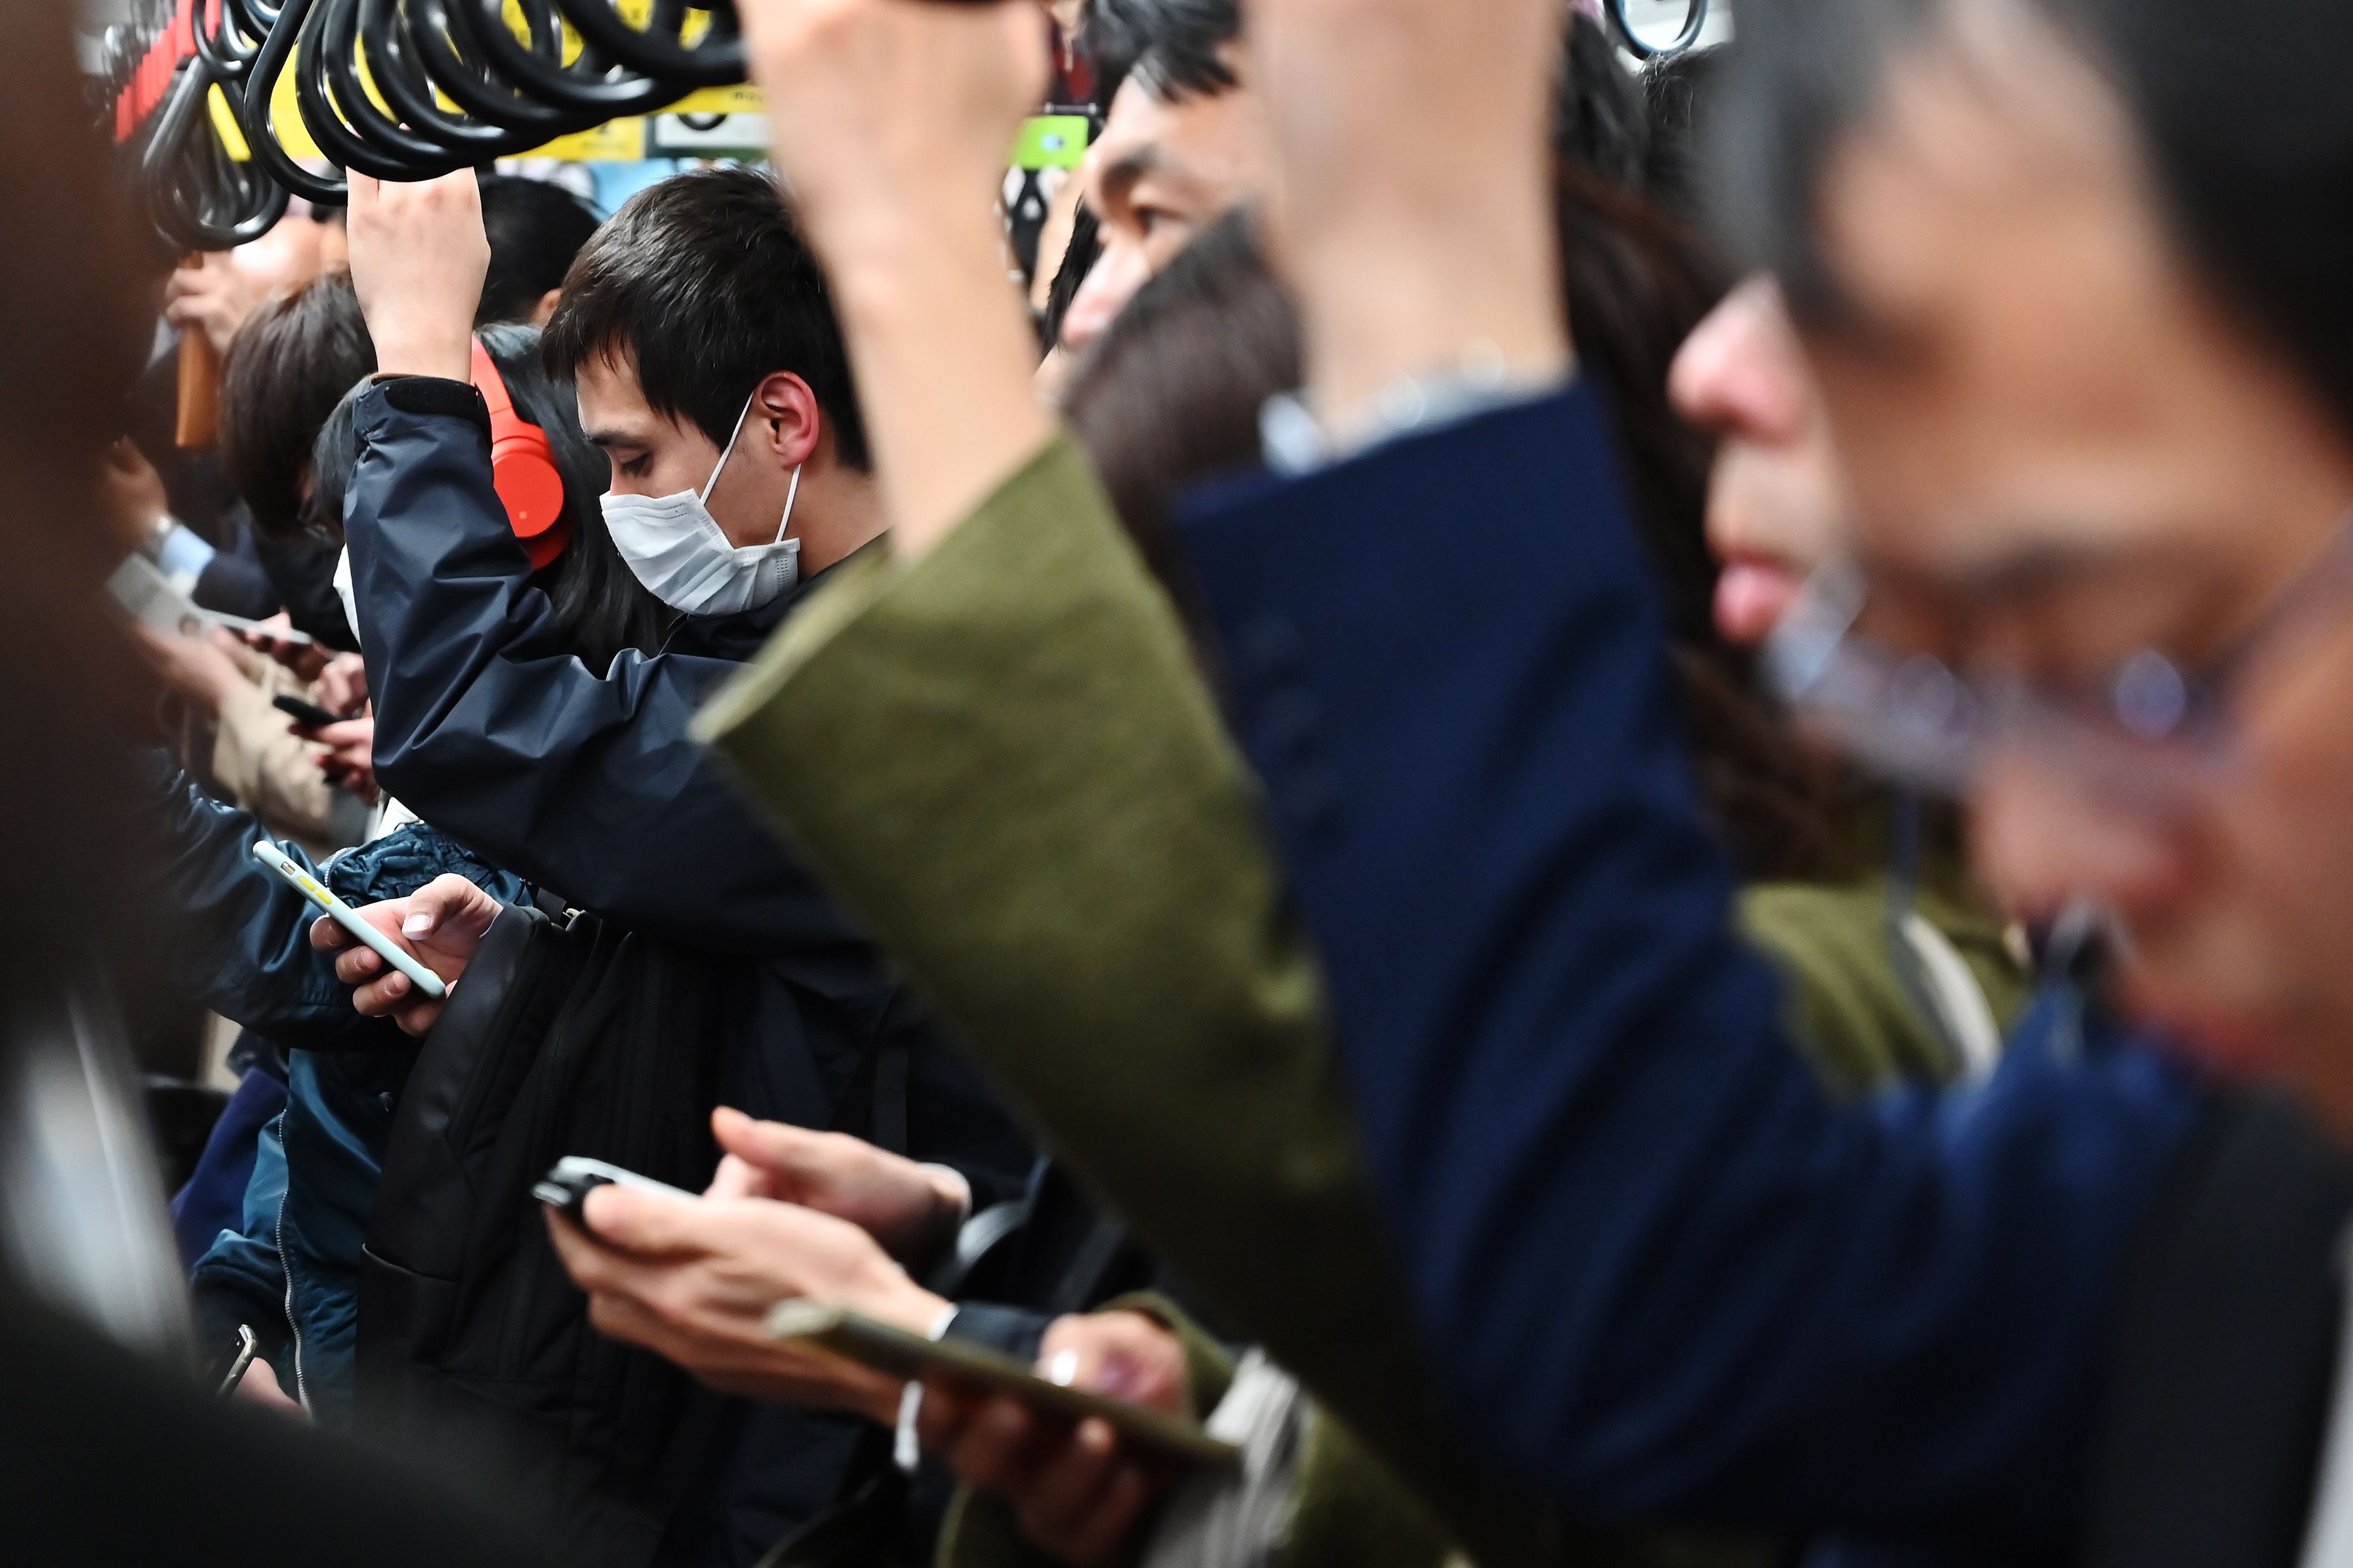 Commuters use their mobile phones while travelling on a coach of the Tokyo Metro network in Tokyo on March 26, 2019.